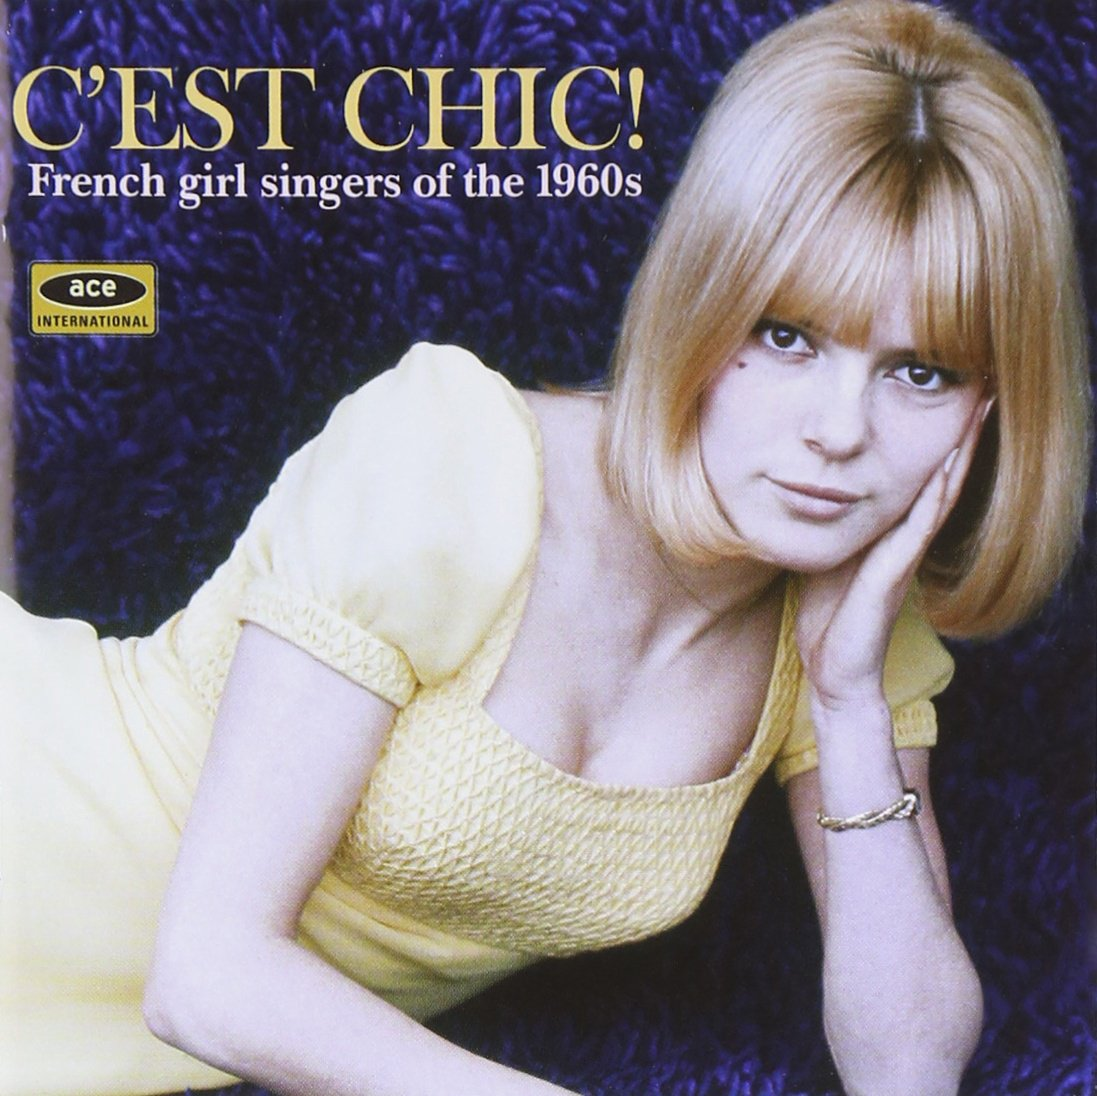 C'est Chic! French Girl Singers of the 1960s by Ace (Label)